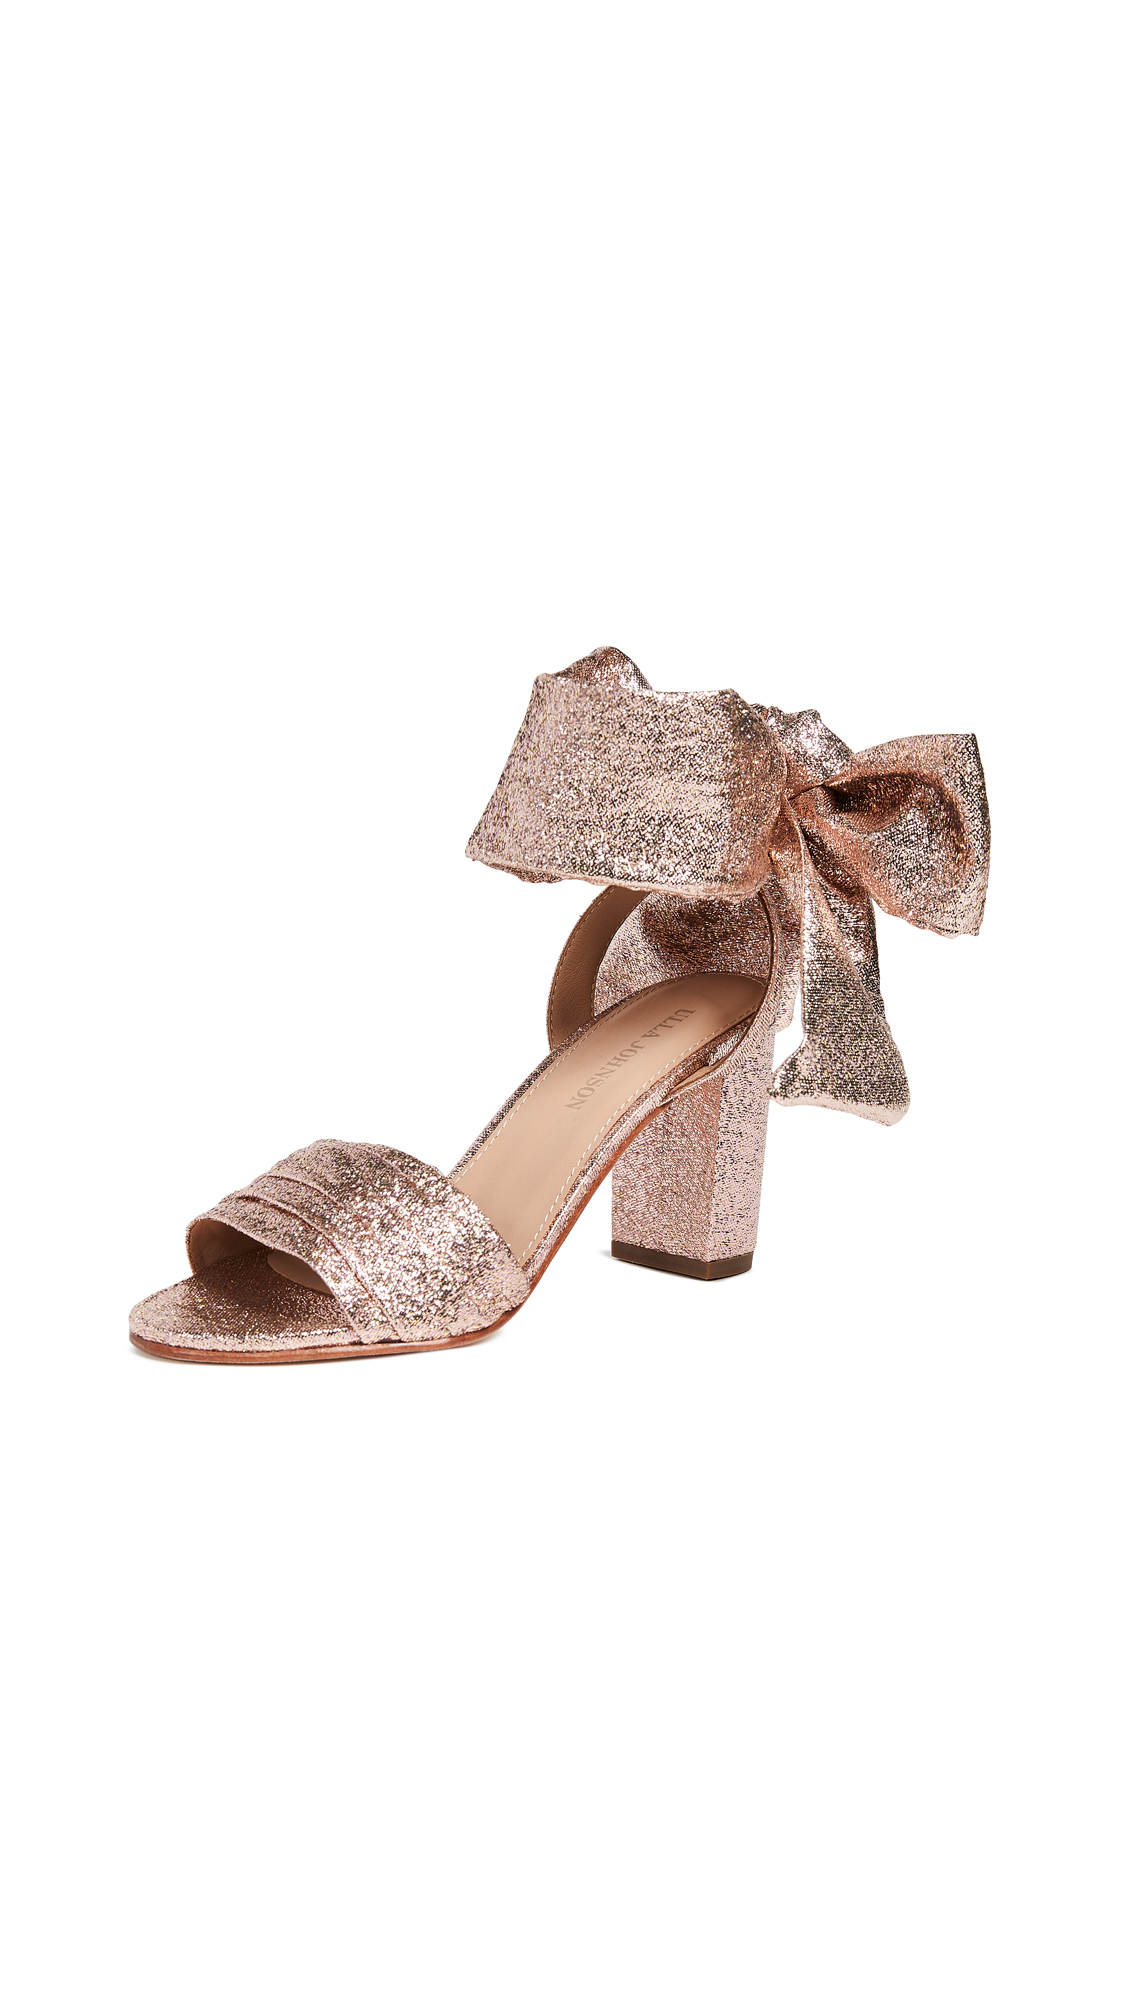 Ulla Johnson Cupid Heels - Sparkle